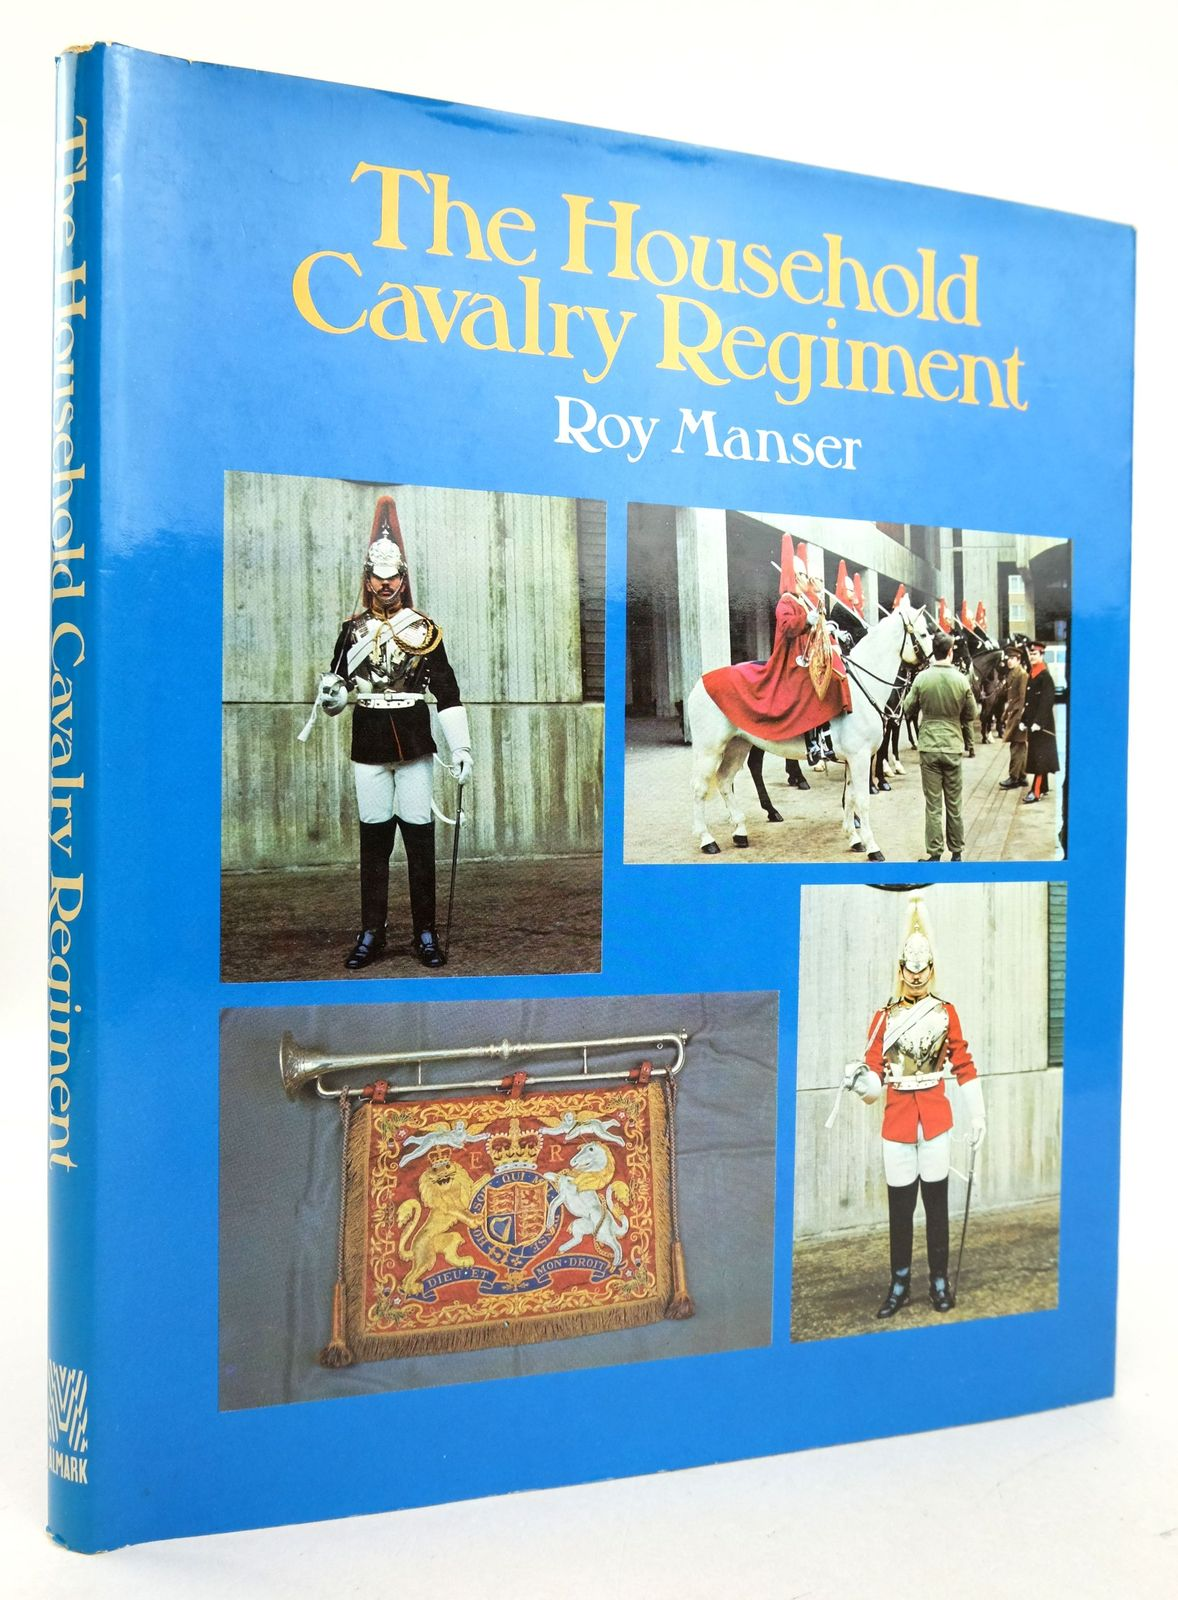 Photo of THE HOUSEHOLD CAVALRY REGIMENT written by Manser, Roy published by Almark Publishing Co. Ltd. (STOCK CODE: 1819707)  for sale by Stella & Rose's Books